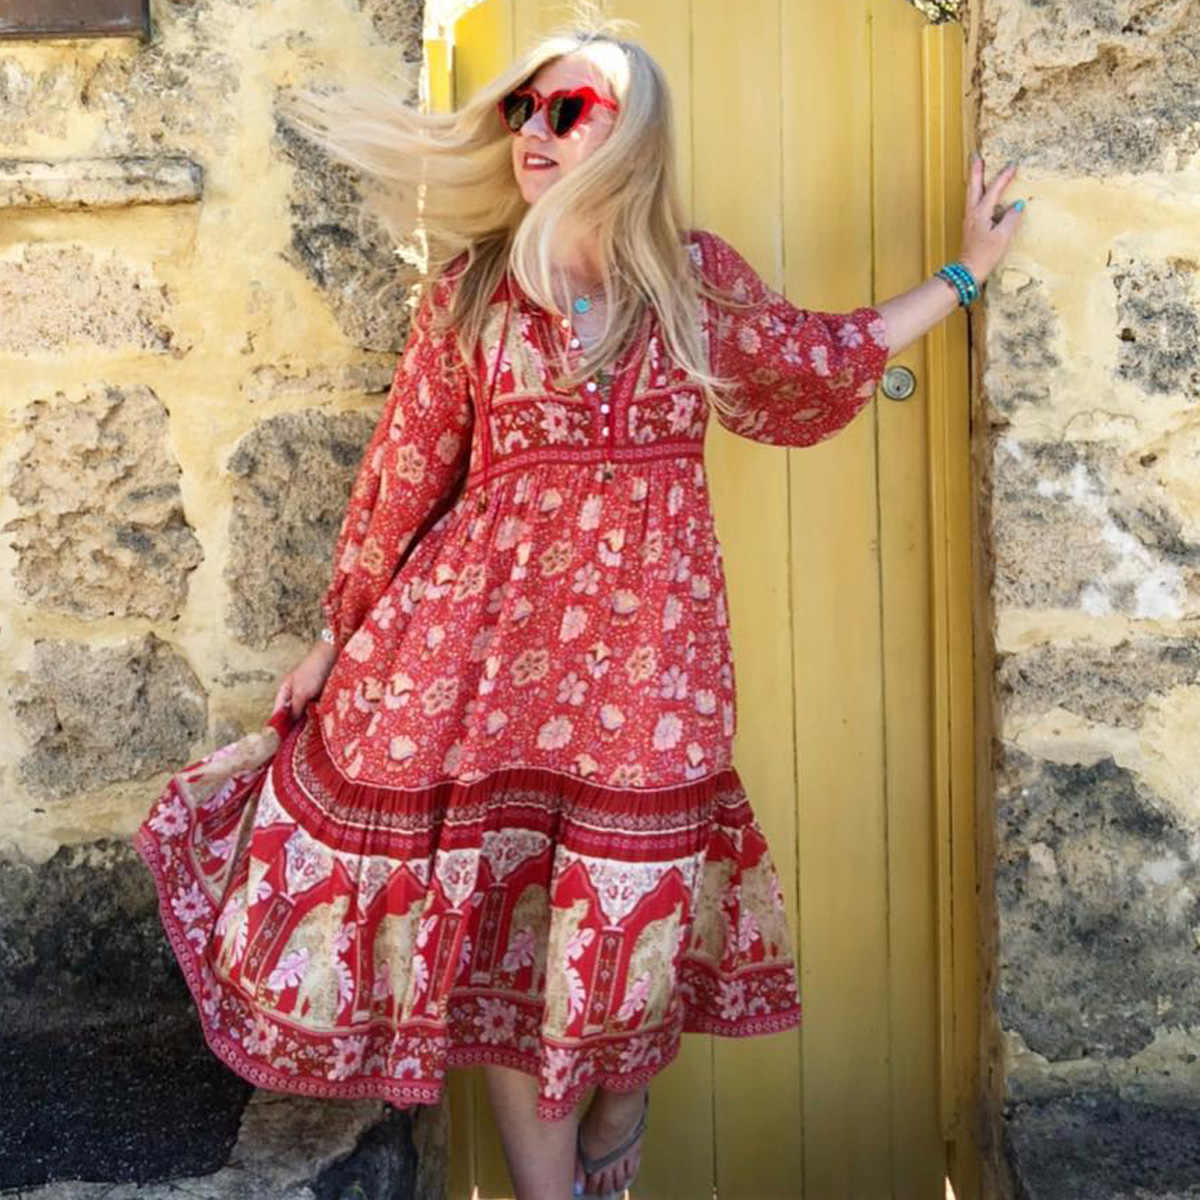 dcda3991a ... Jastie Summer Gypsy Floral Print Dress Red Poinciana Gown Dresses  V-Neck Button Women Dresses ...